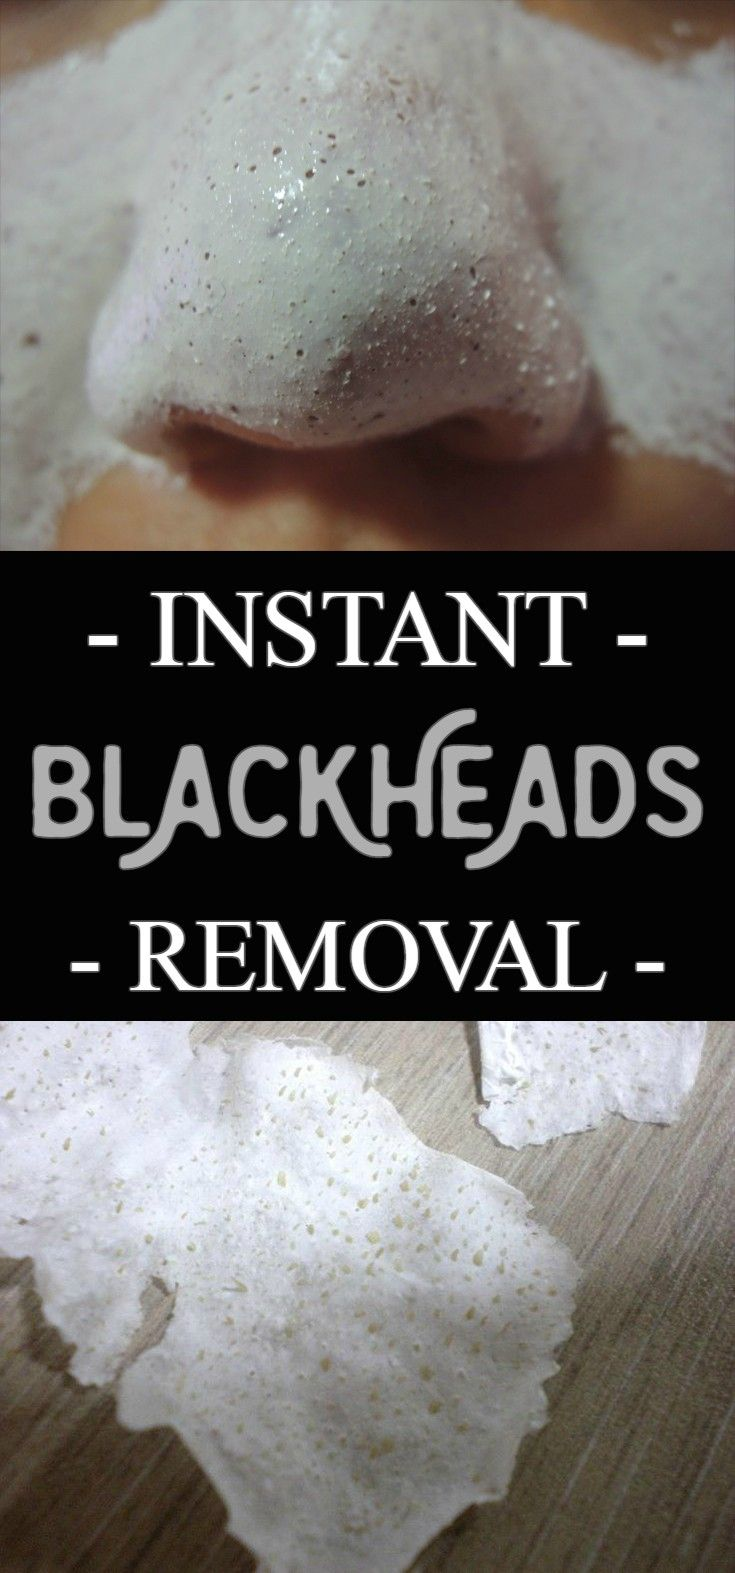 Instant+blackheads+removal.png (735×1573)